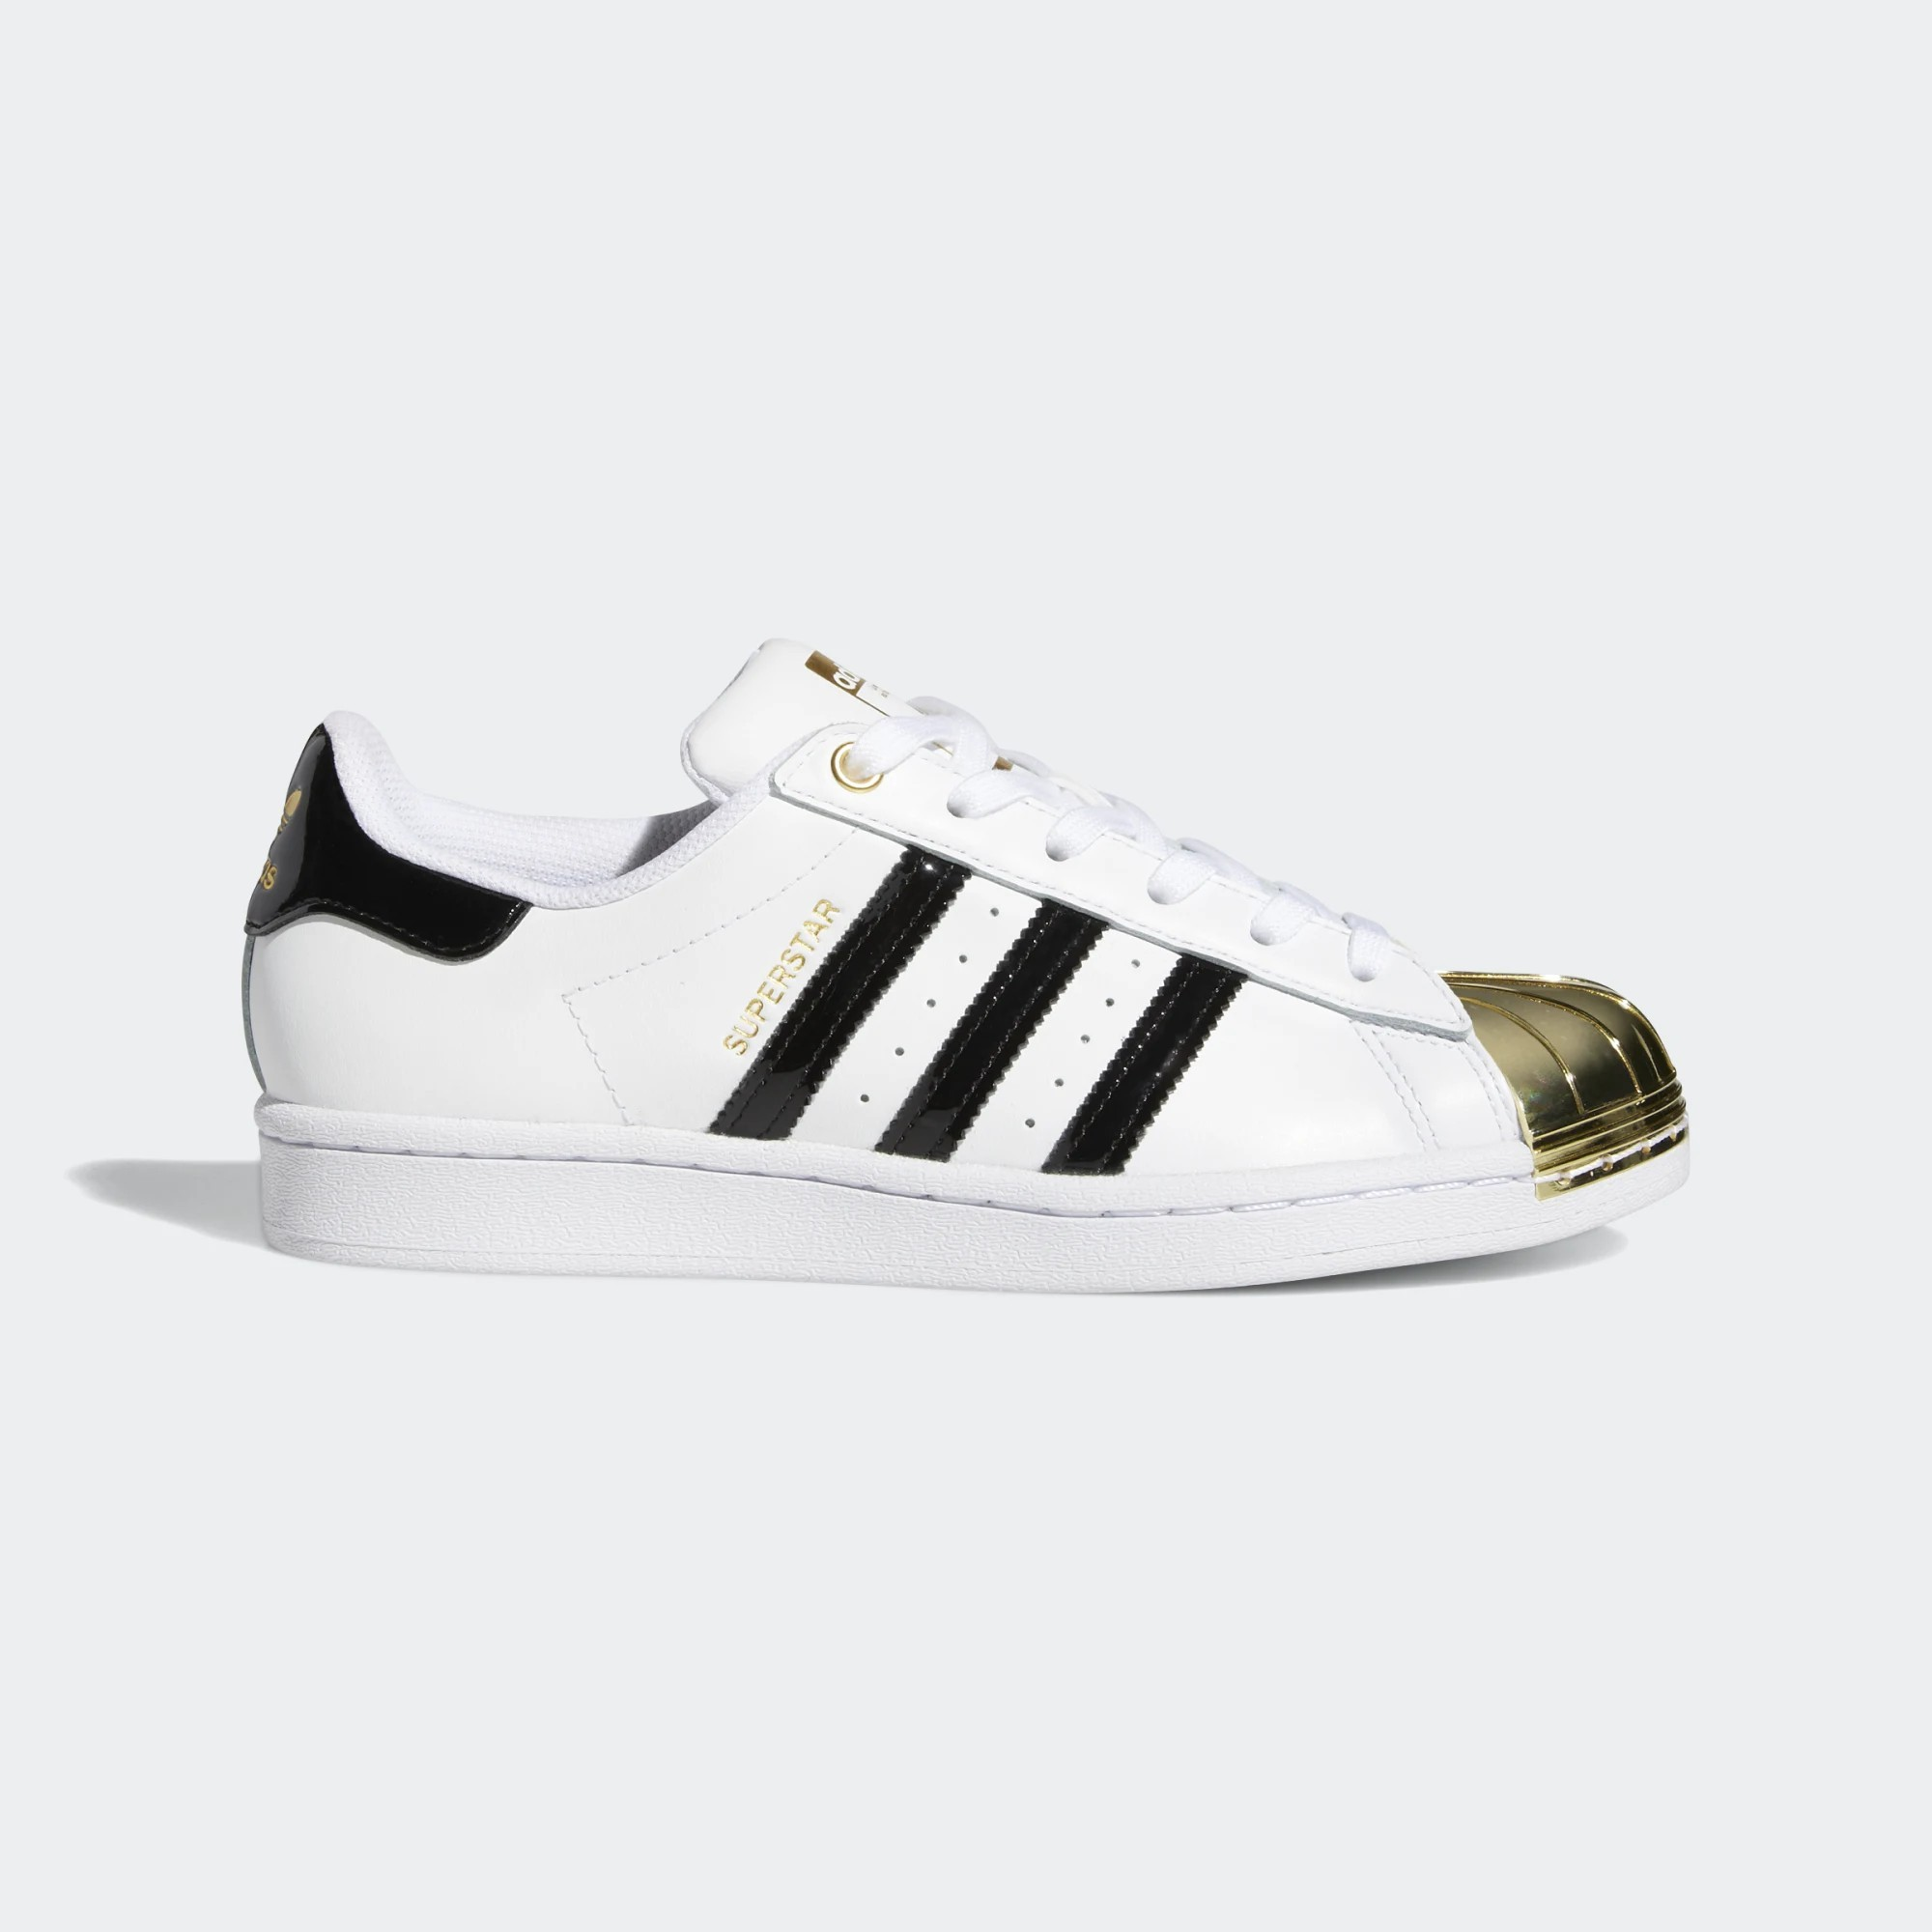 Adidas Originals Superstar Metal Toe W FV3310